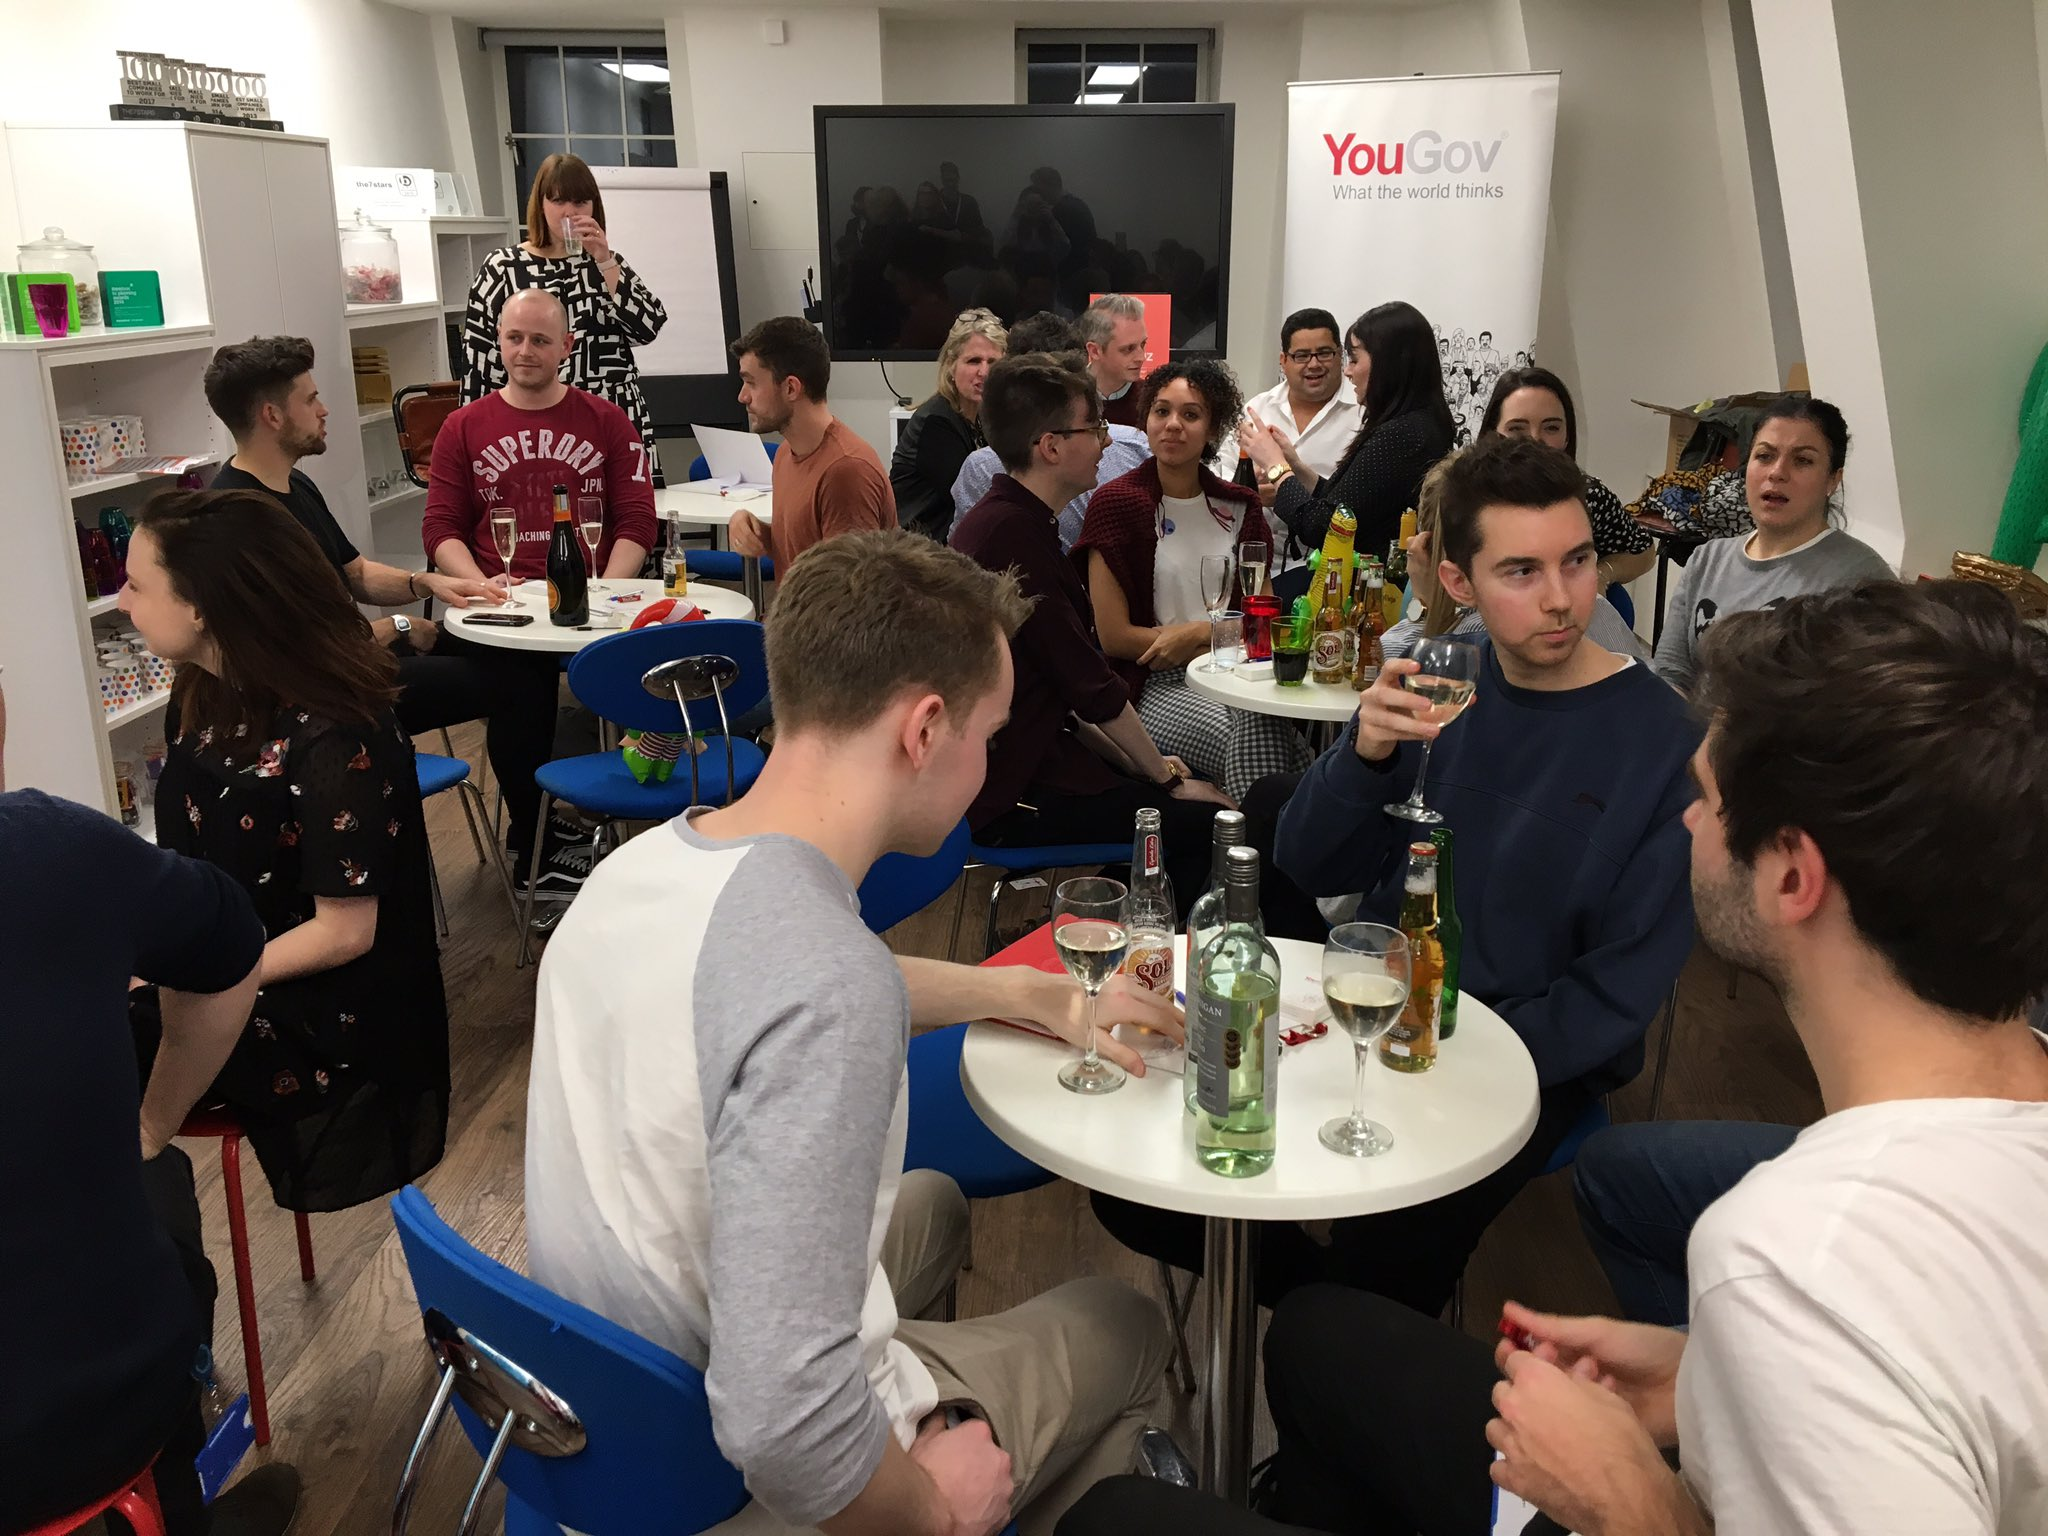 It's quiz time! Drinks (and inflatables) at the ready 🍾 @YouGov #YouGovTakeover https://t.co/0trpIuGfiD